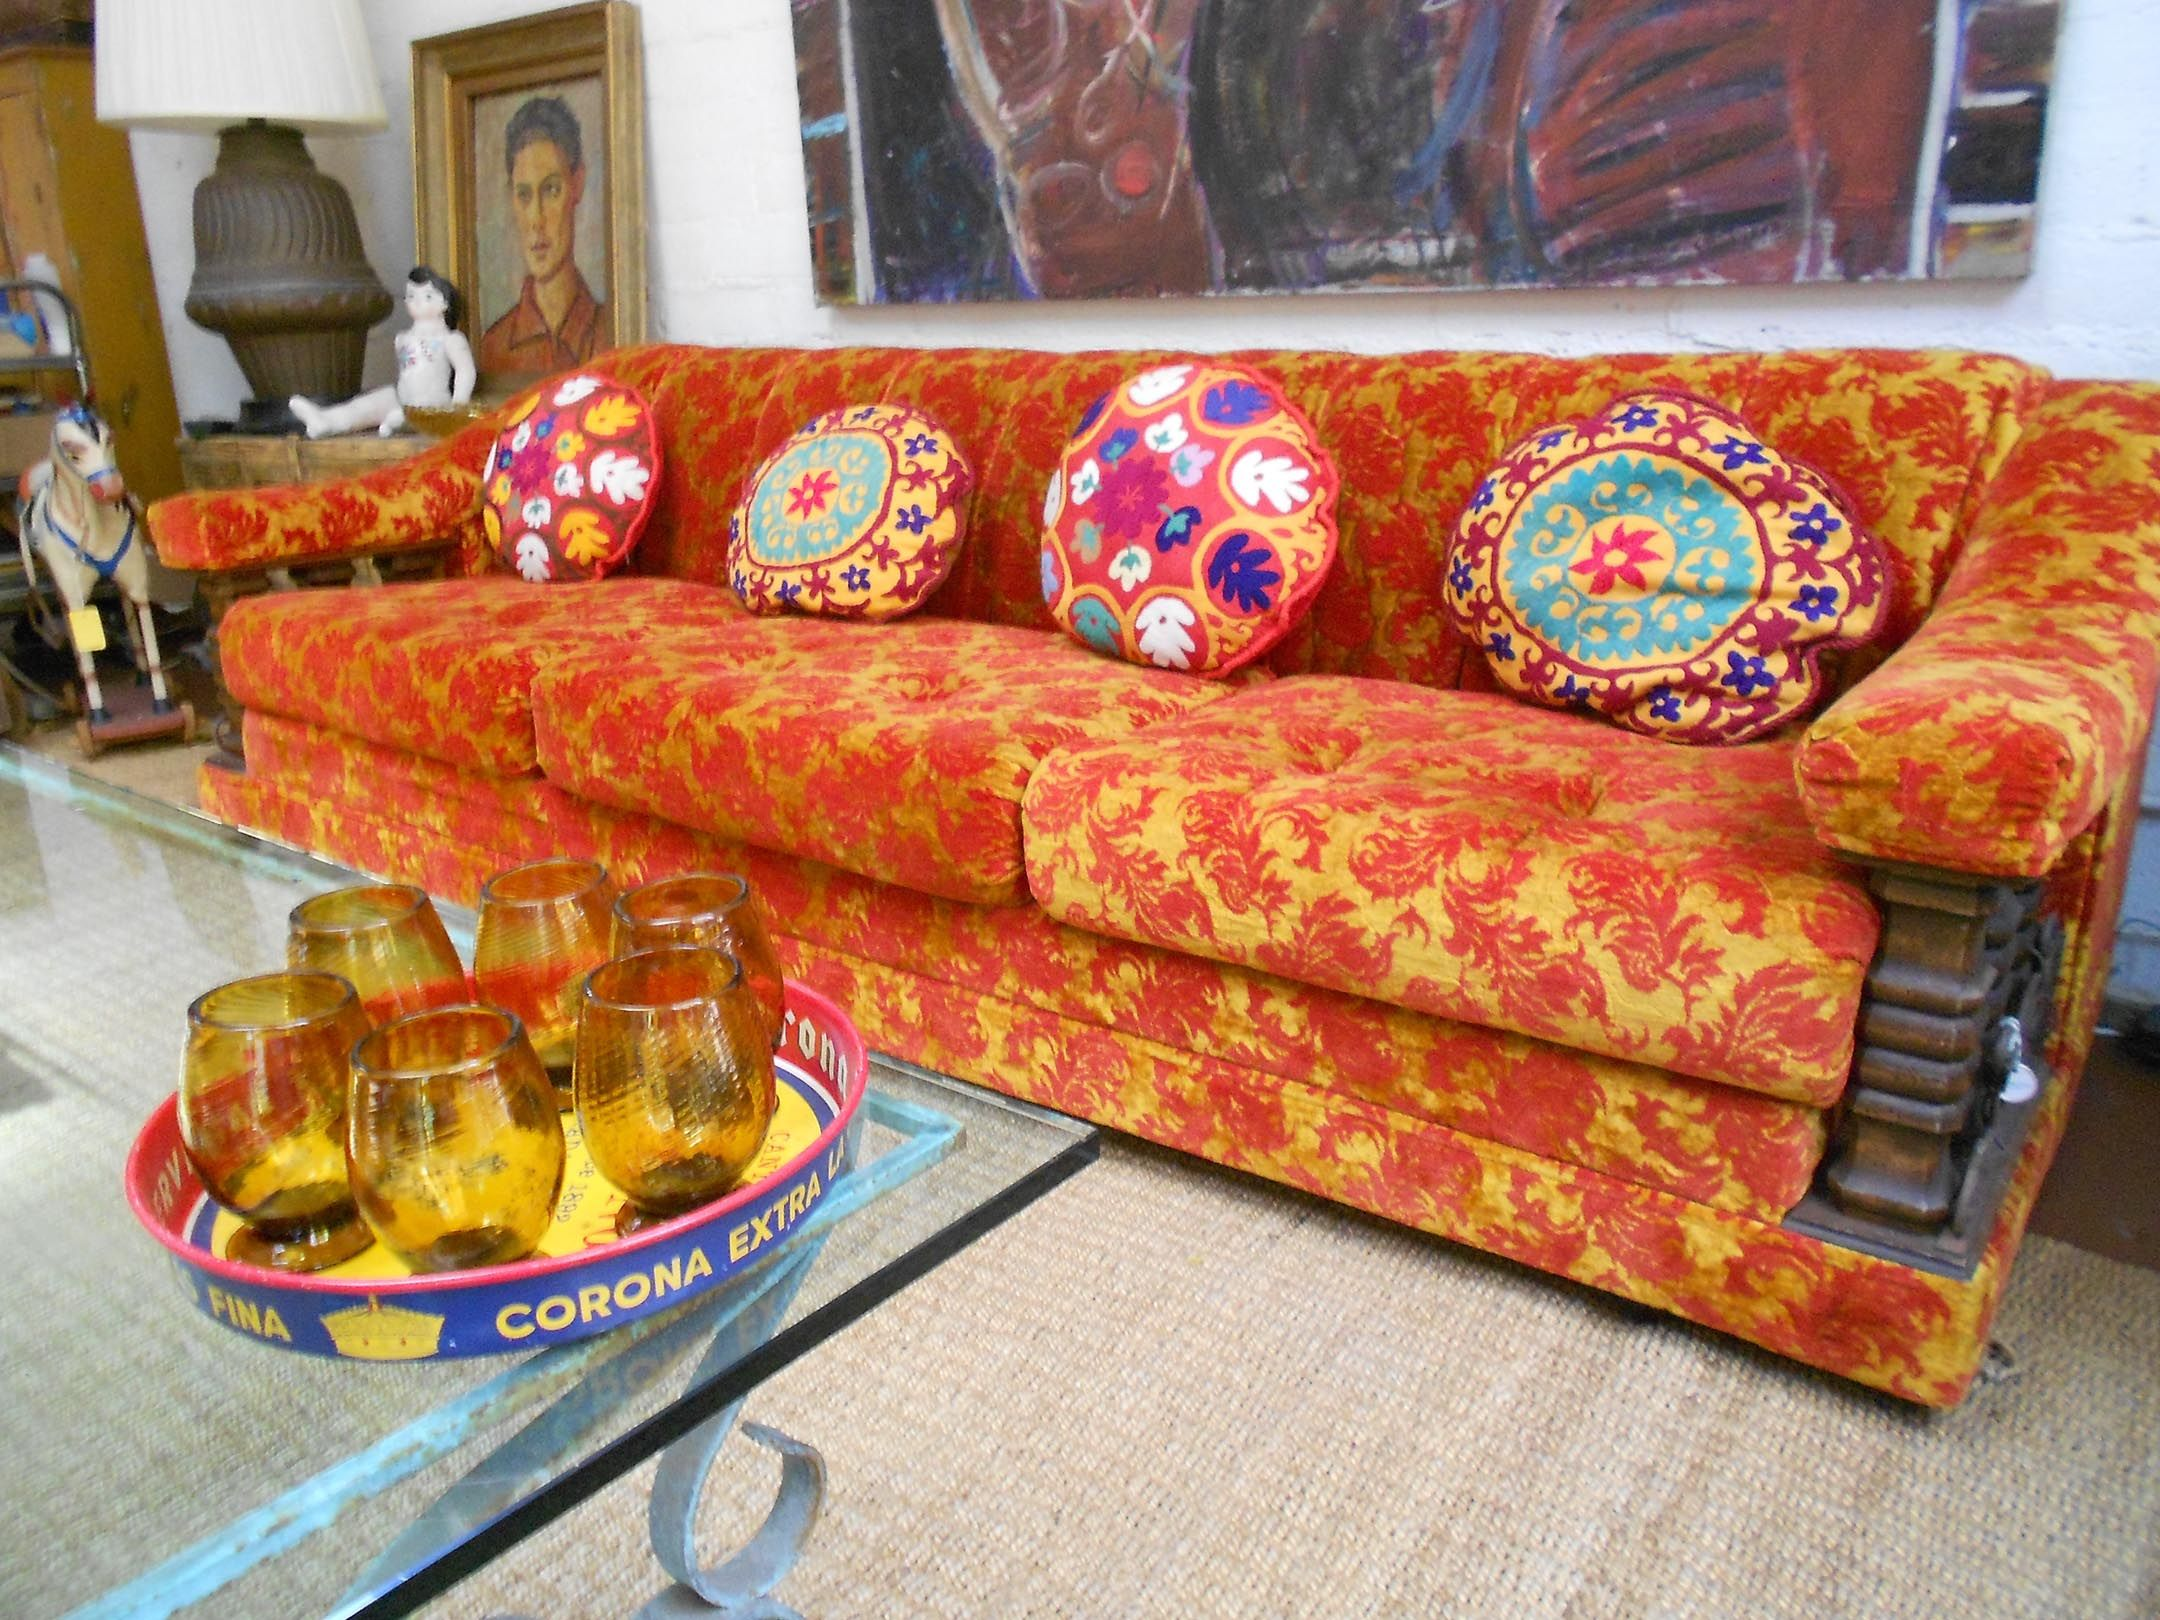 Incroyable #orange #red #brocade #sofa #1960u0027s #uzbeki #pillows #handblown #mexican  #glass This Outrageous Couch Is An Original Sears Piece Mid 60u0027s.